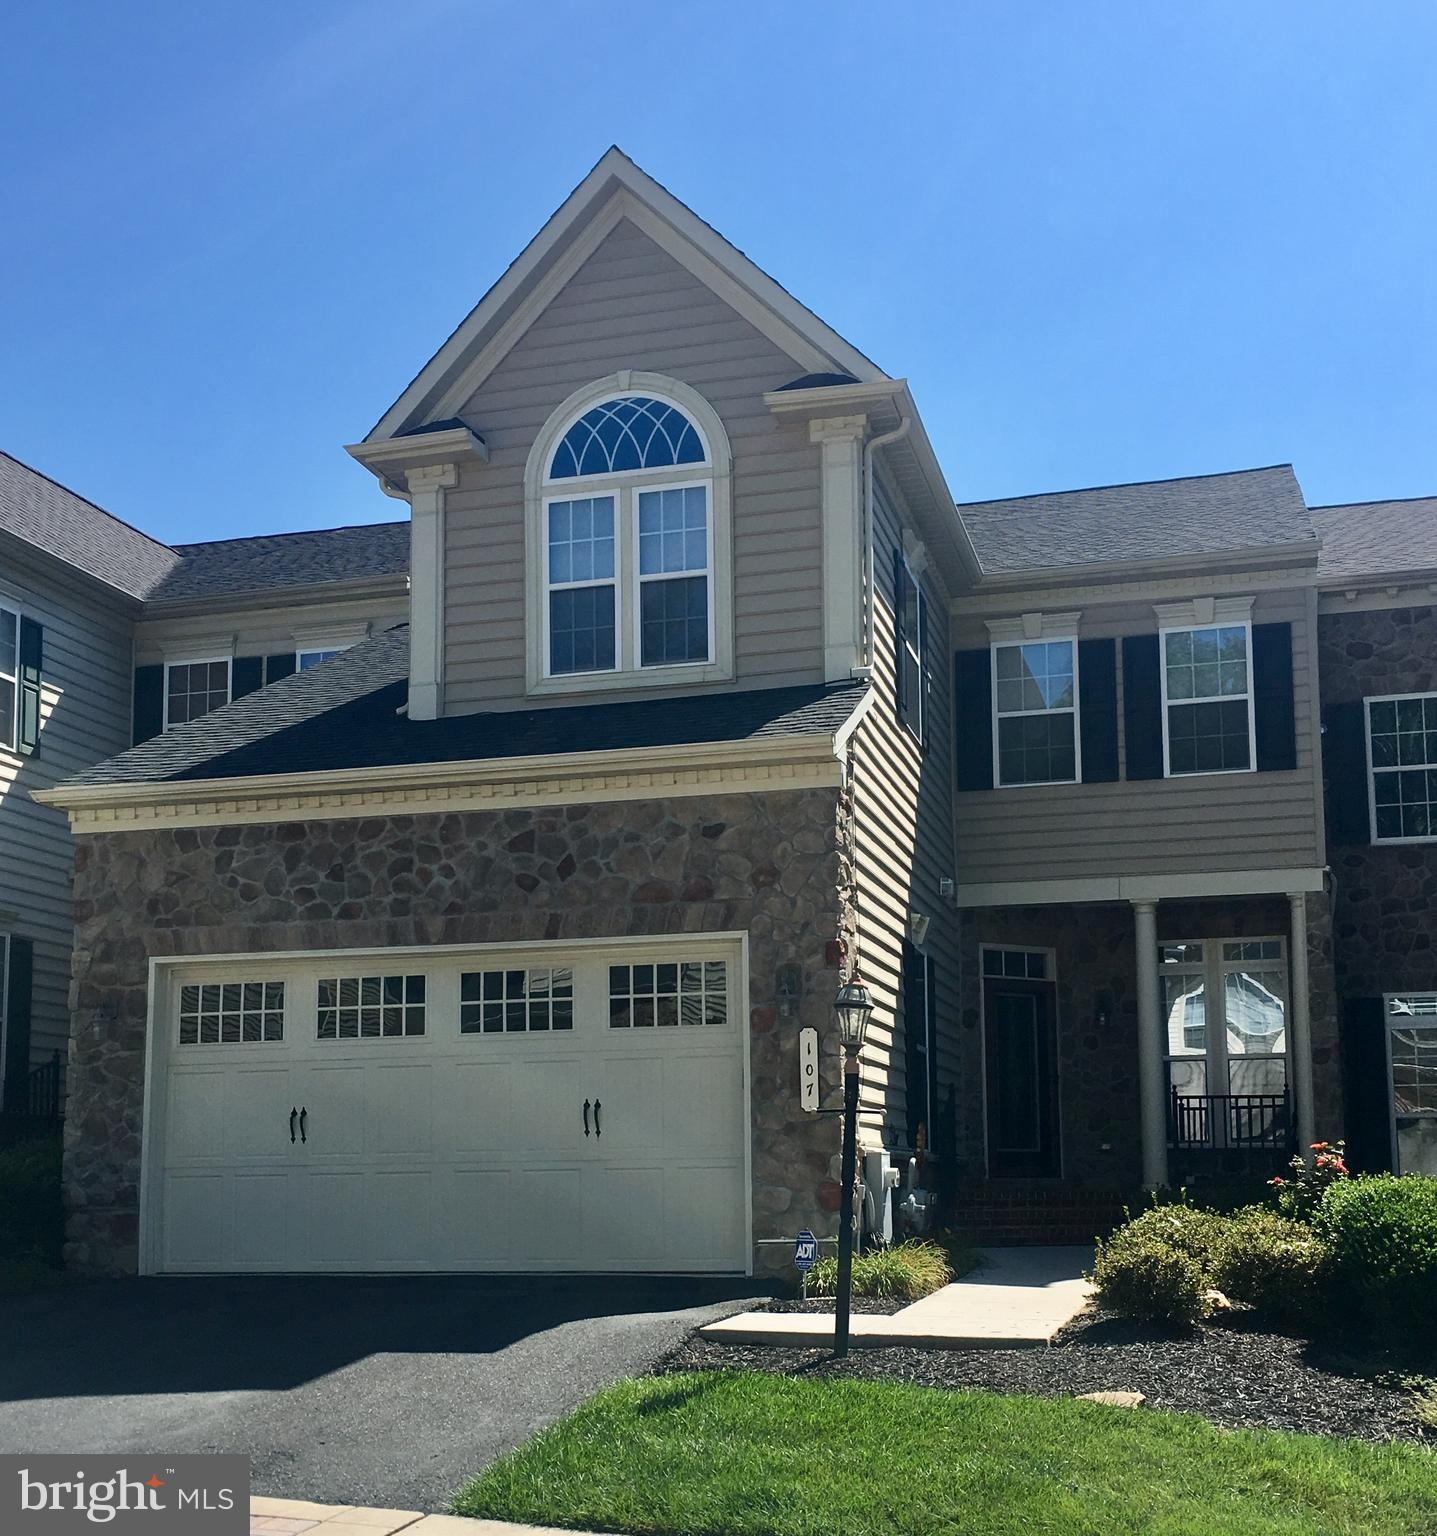 3974 +/- FINISHED SQ FT OF LIVING SPACE WITH ROOM TO EXPAND IN THIS BEAUTIFULLY MAINTAINED BULLE ROC